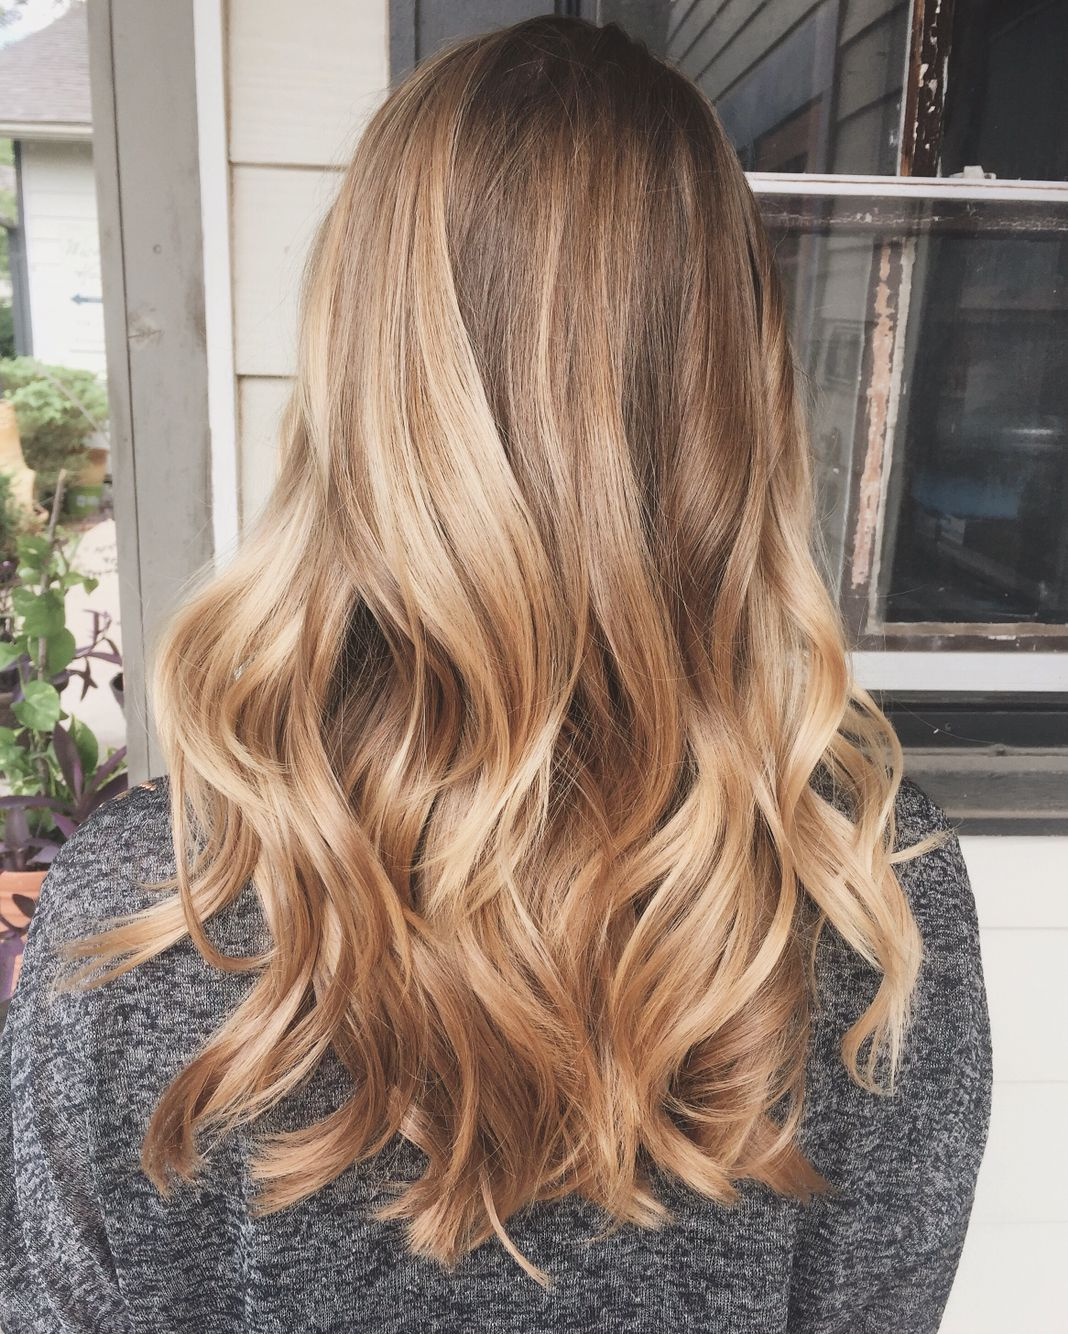 Golden Blonde Balayage Balayage Hair Hair Styles Honey Blonde Hair